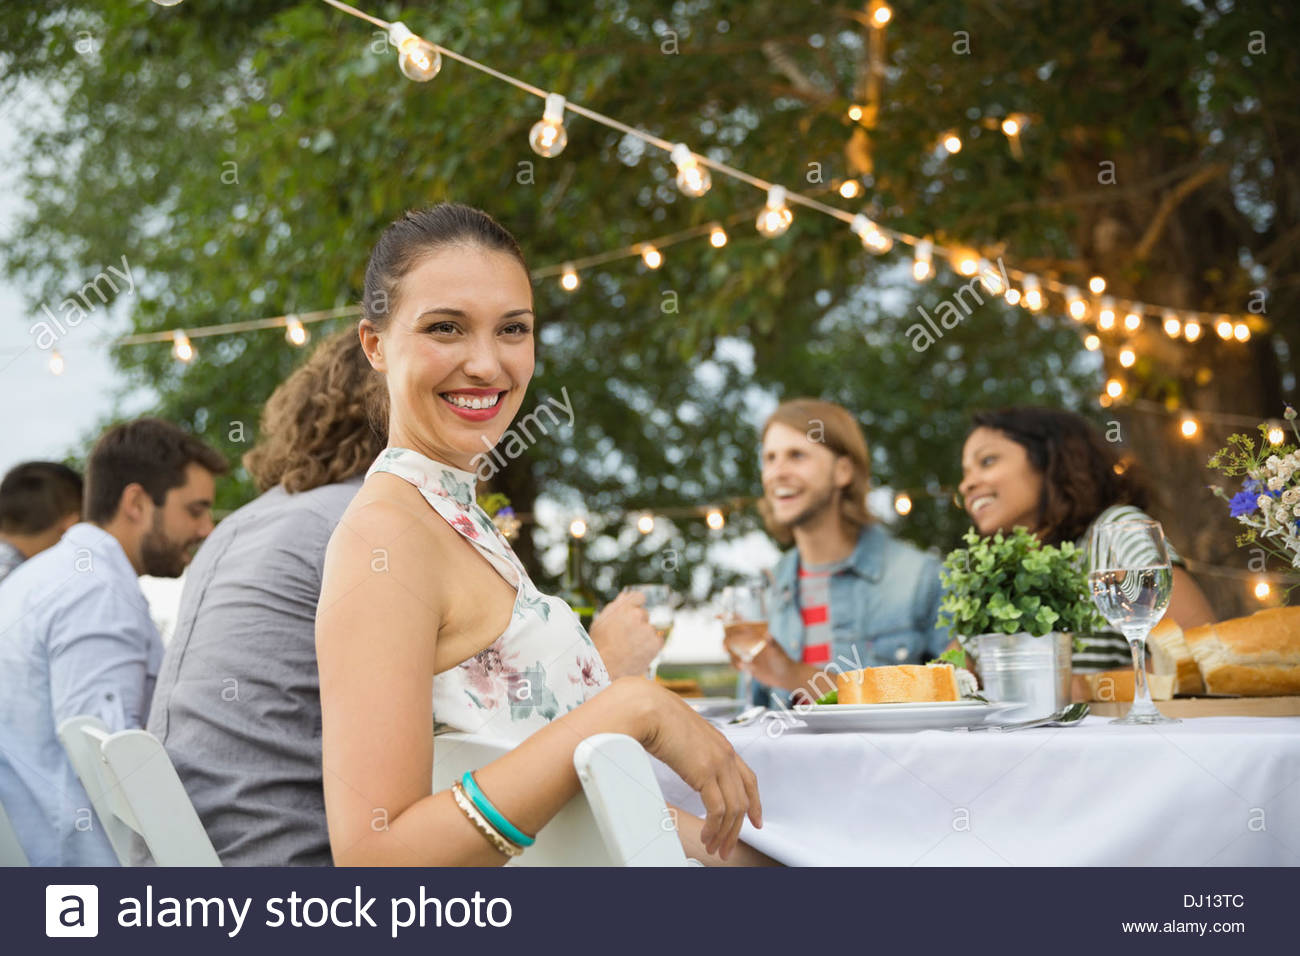 Smiling woman sitting with friends at outdoor dinner party - Stock Image